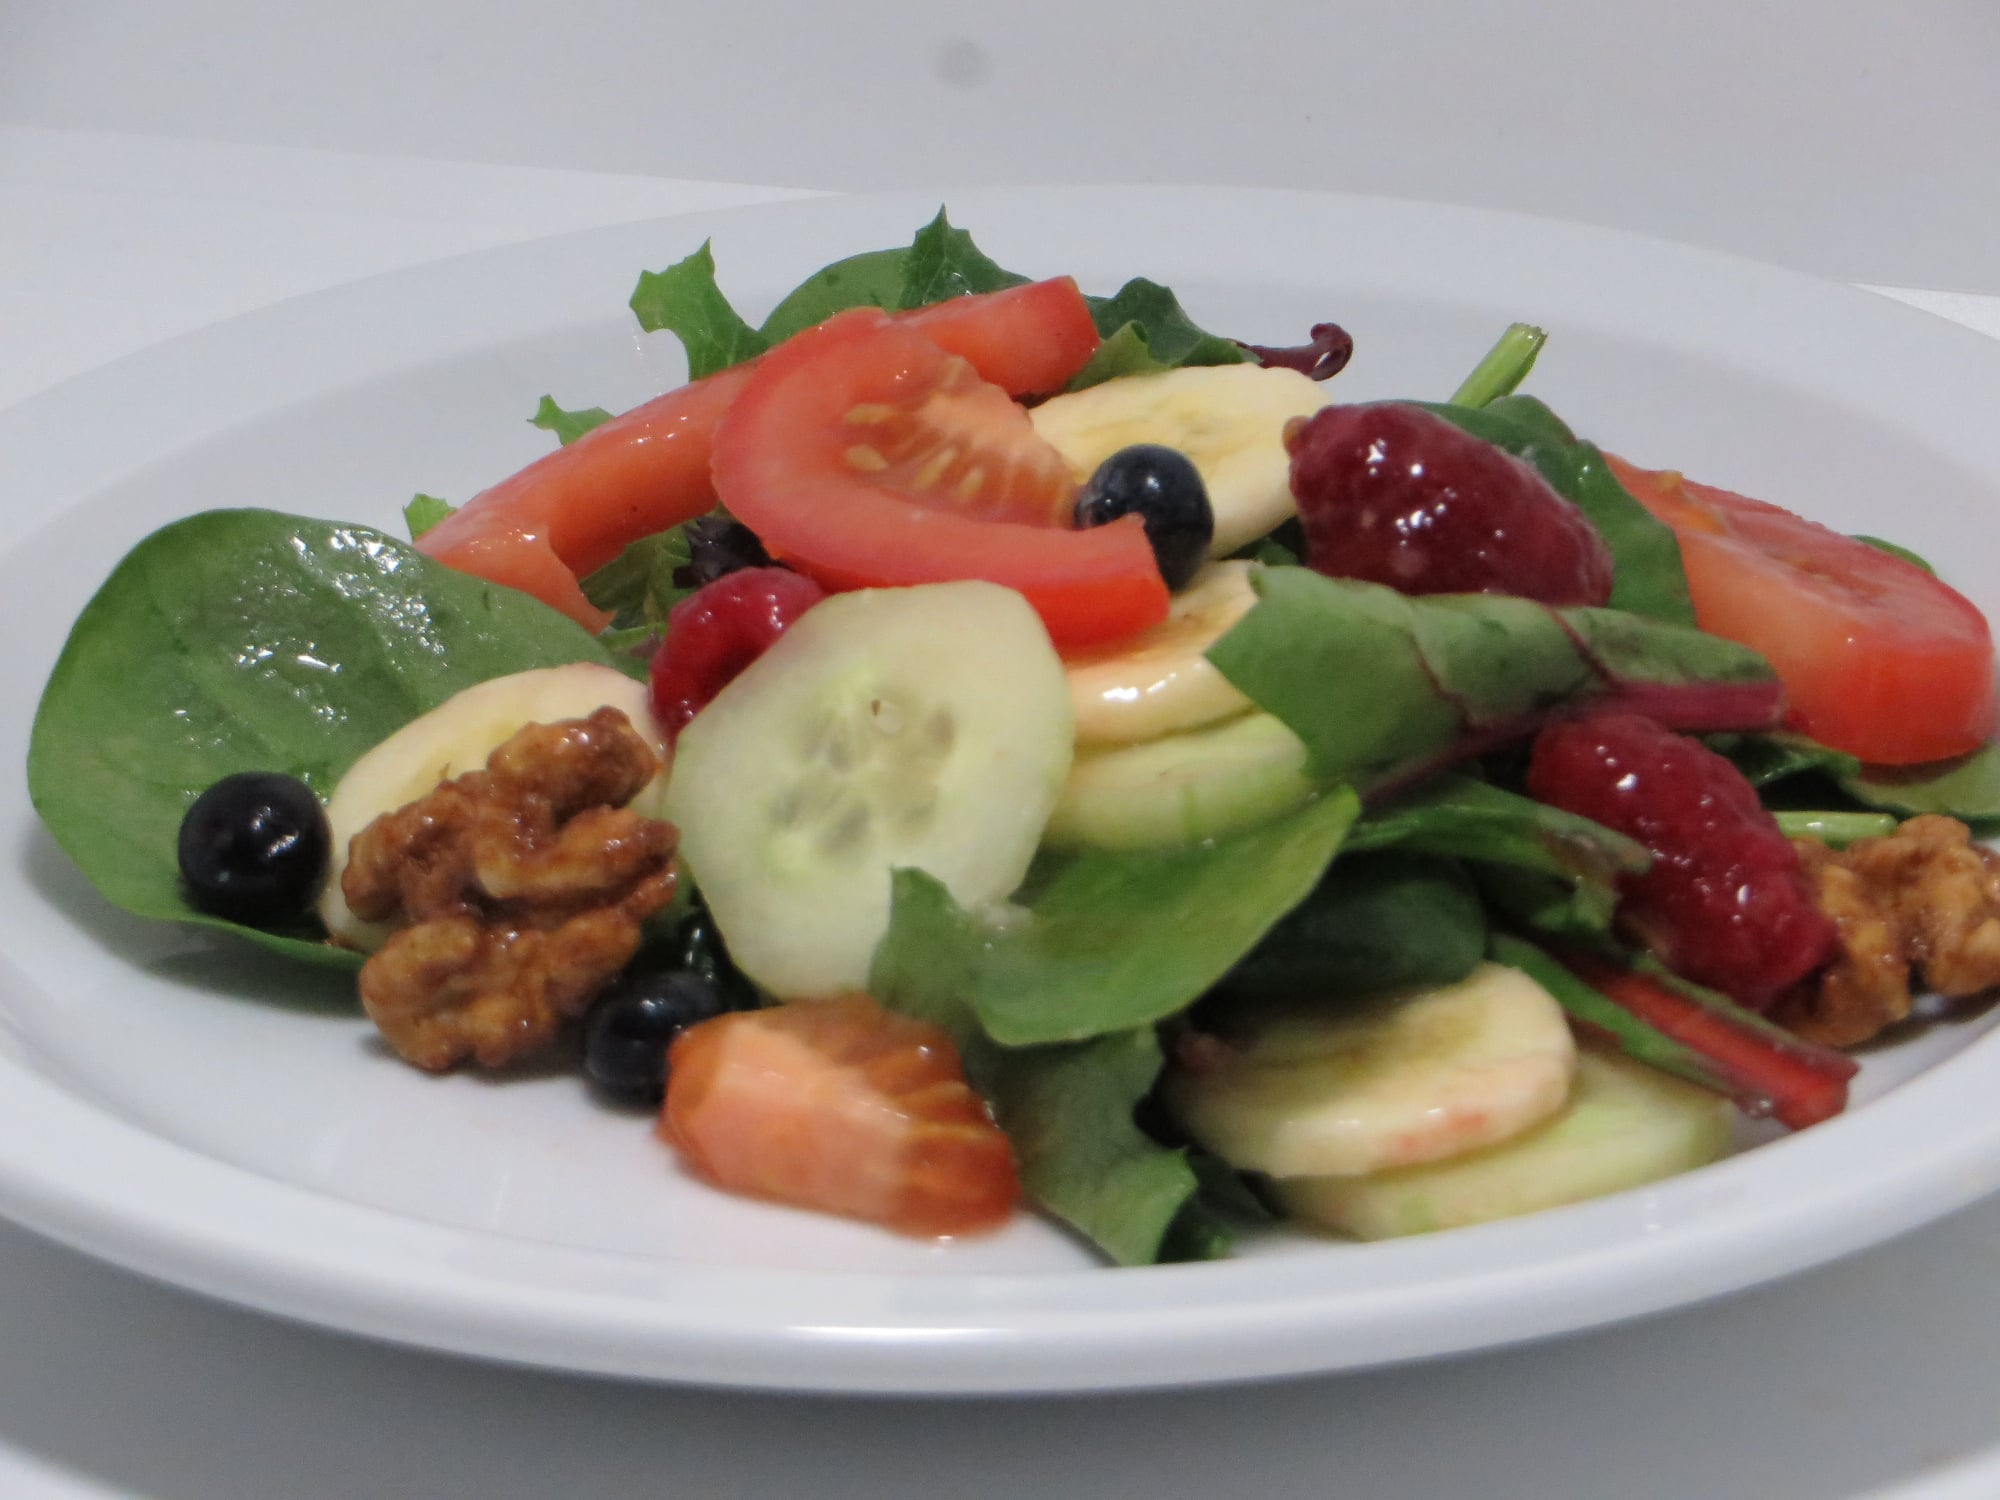 Side of Mixed Greens & Fruit with Italian Dressing